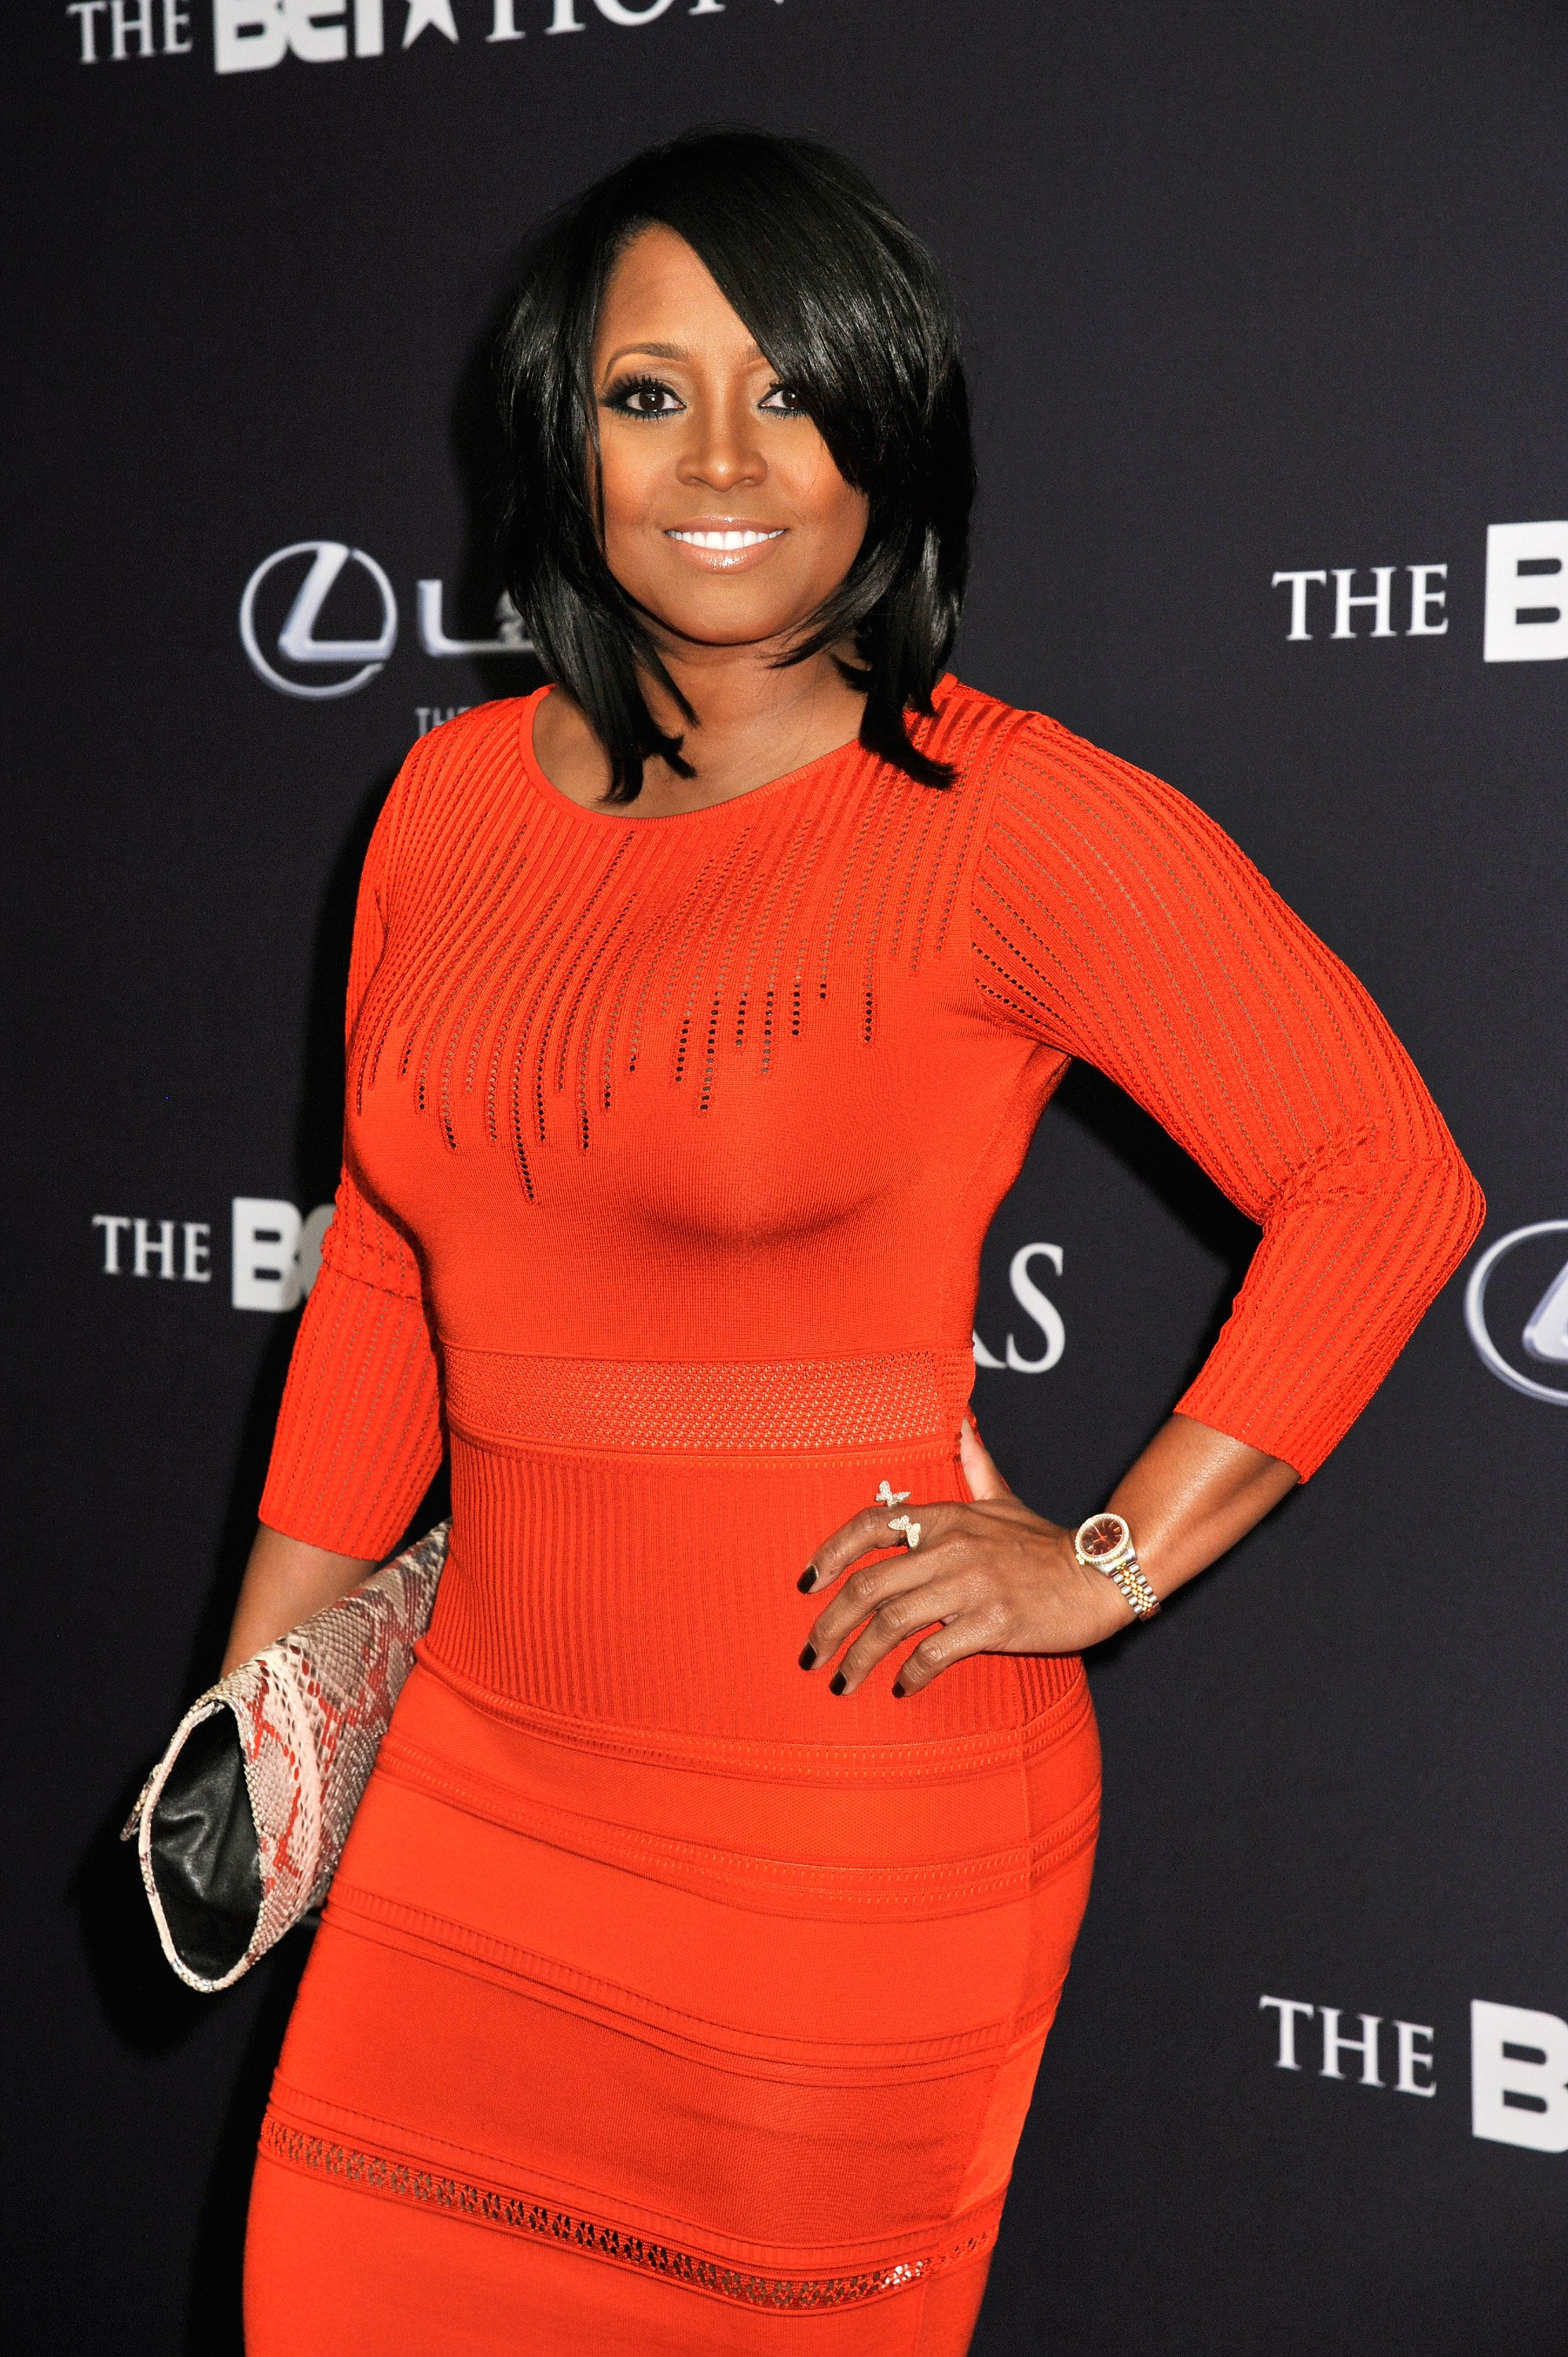 Keshia Knight Pulliam at the BET Honors 2015 at Warner Theatre on January 24, 2015 in Washington, DC. | Source: Getty Images